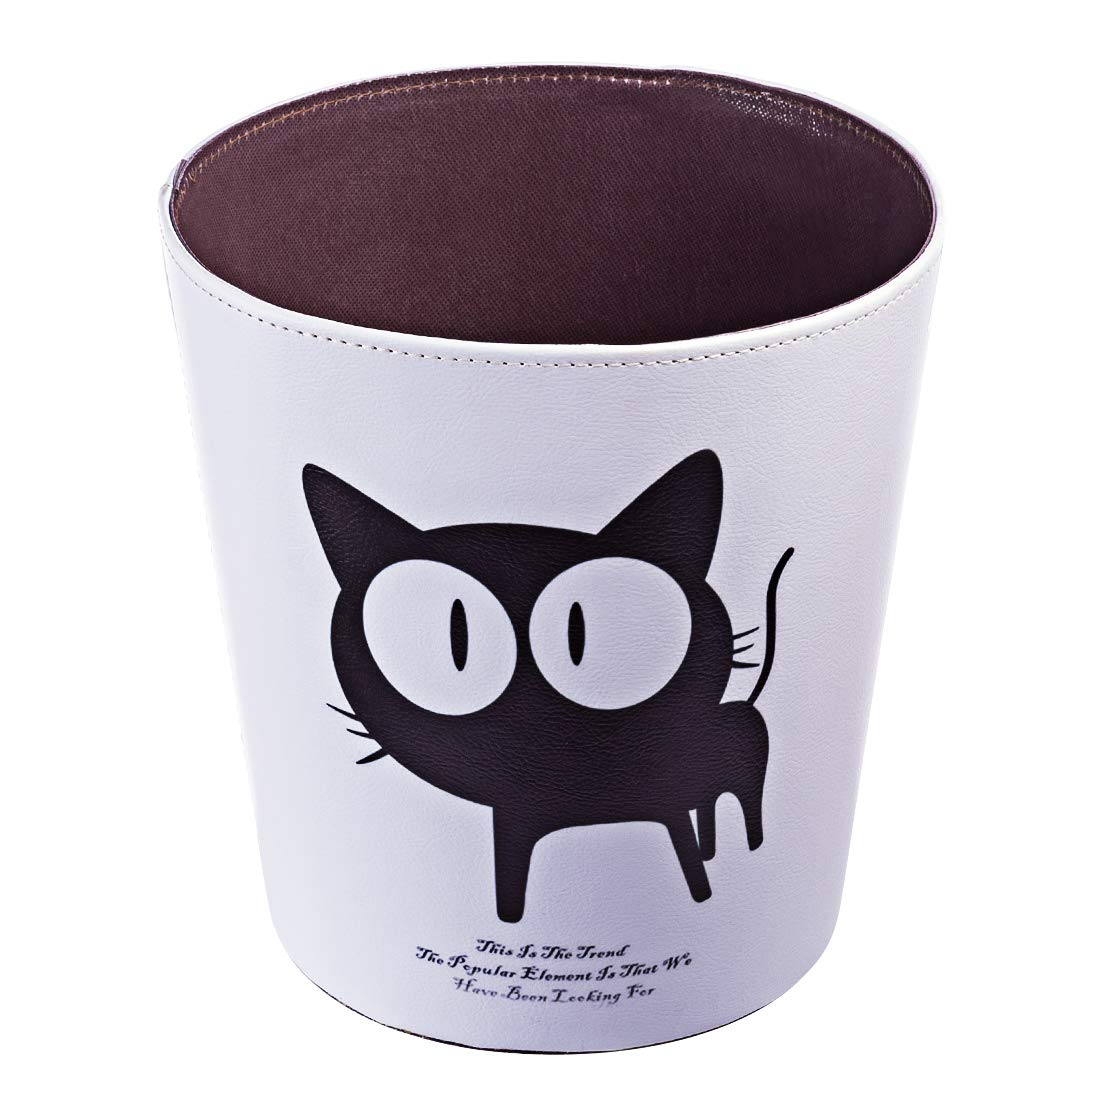 Deskside Wastebasket Decorative Farmhouse Garbage Can Vintage Recycling Bin for Office RuiyiF Trash Can for Kids Room Bedroom Bathroom Kitchen Without Lid